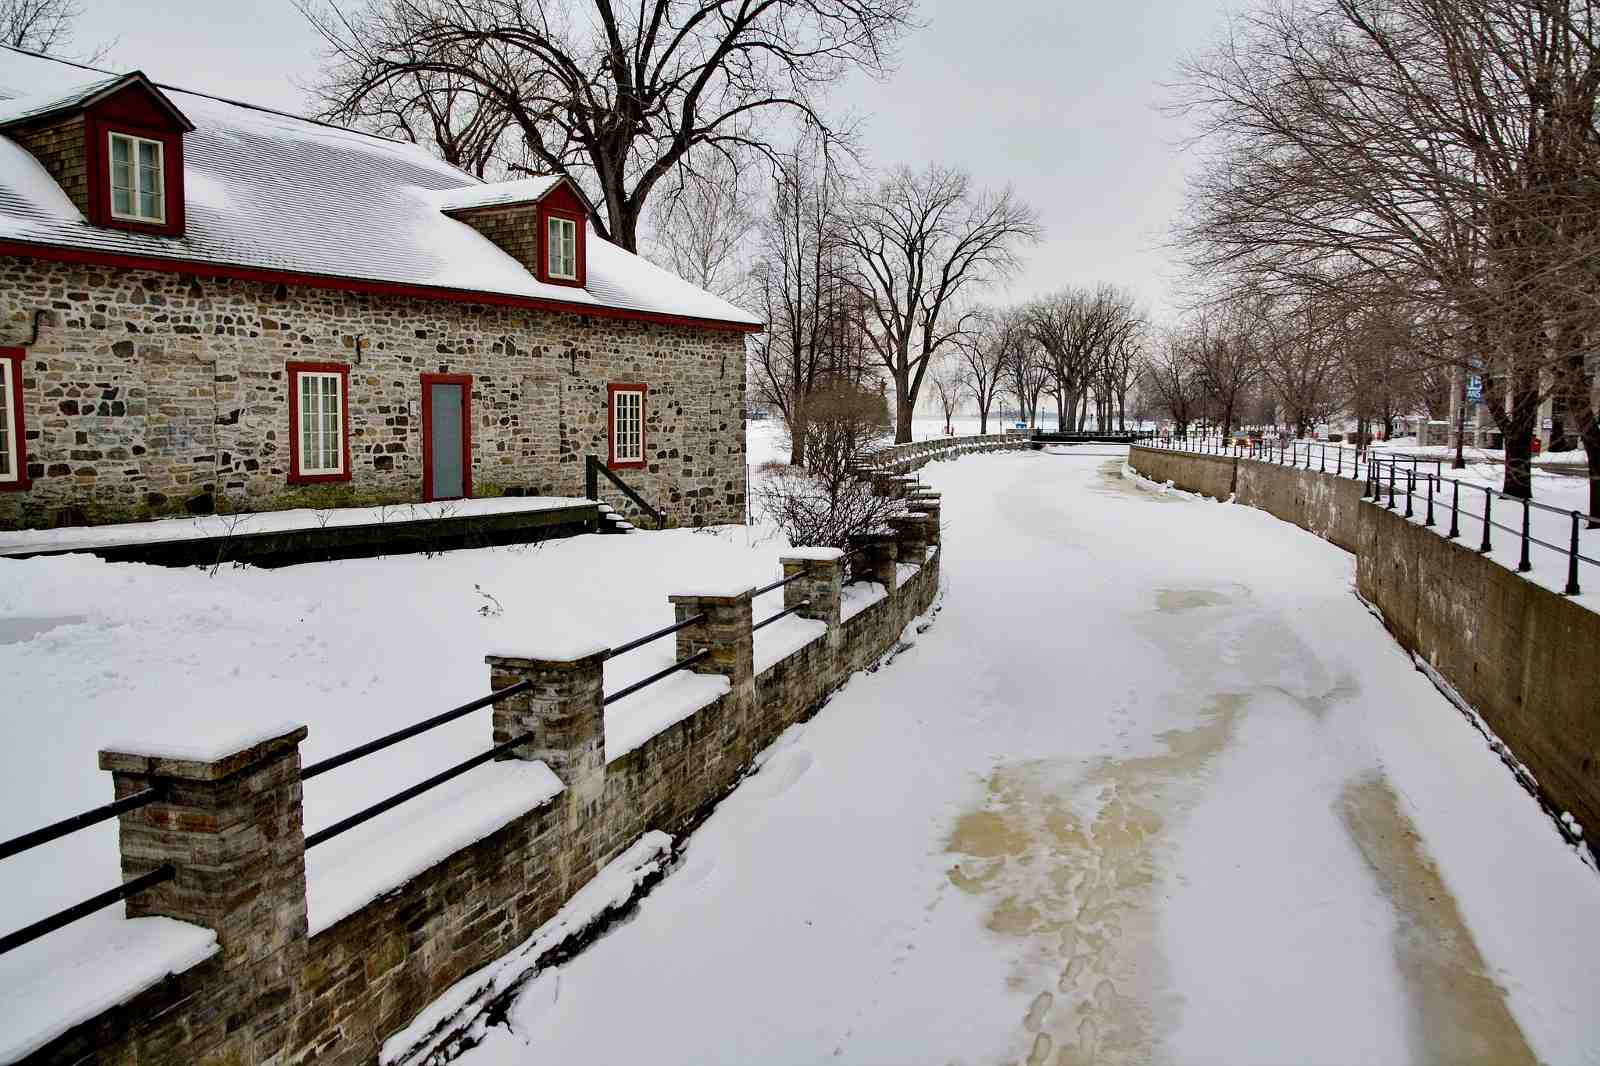 Montreal snowshoeing destinations include the Lachine Canal.